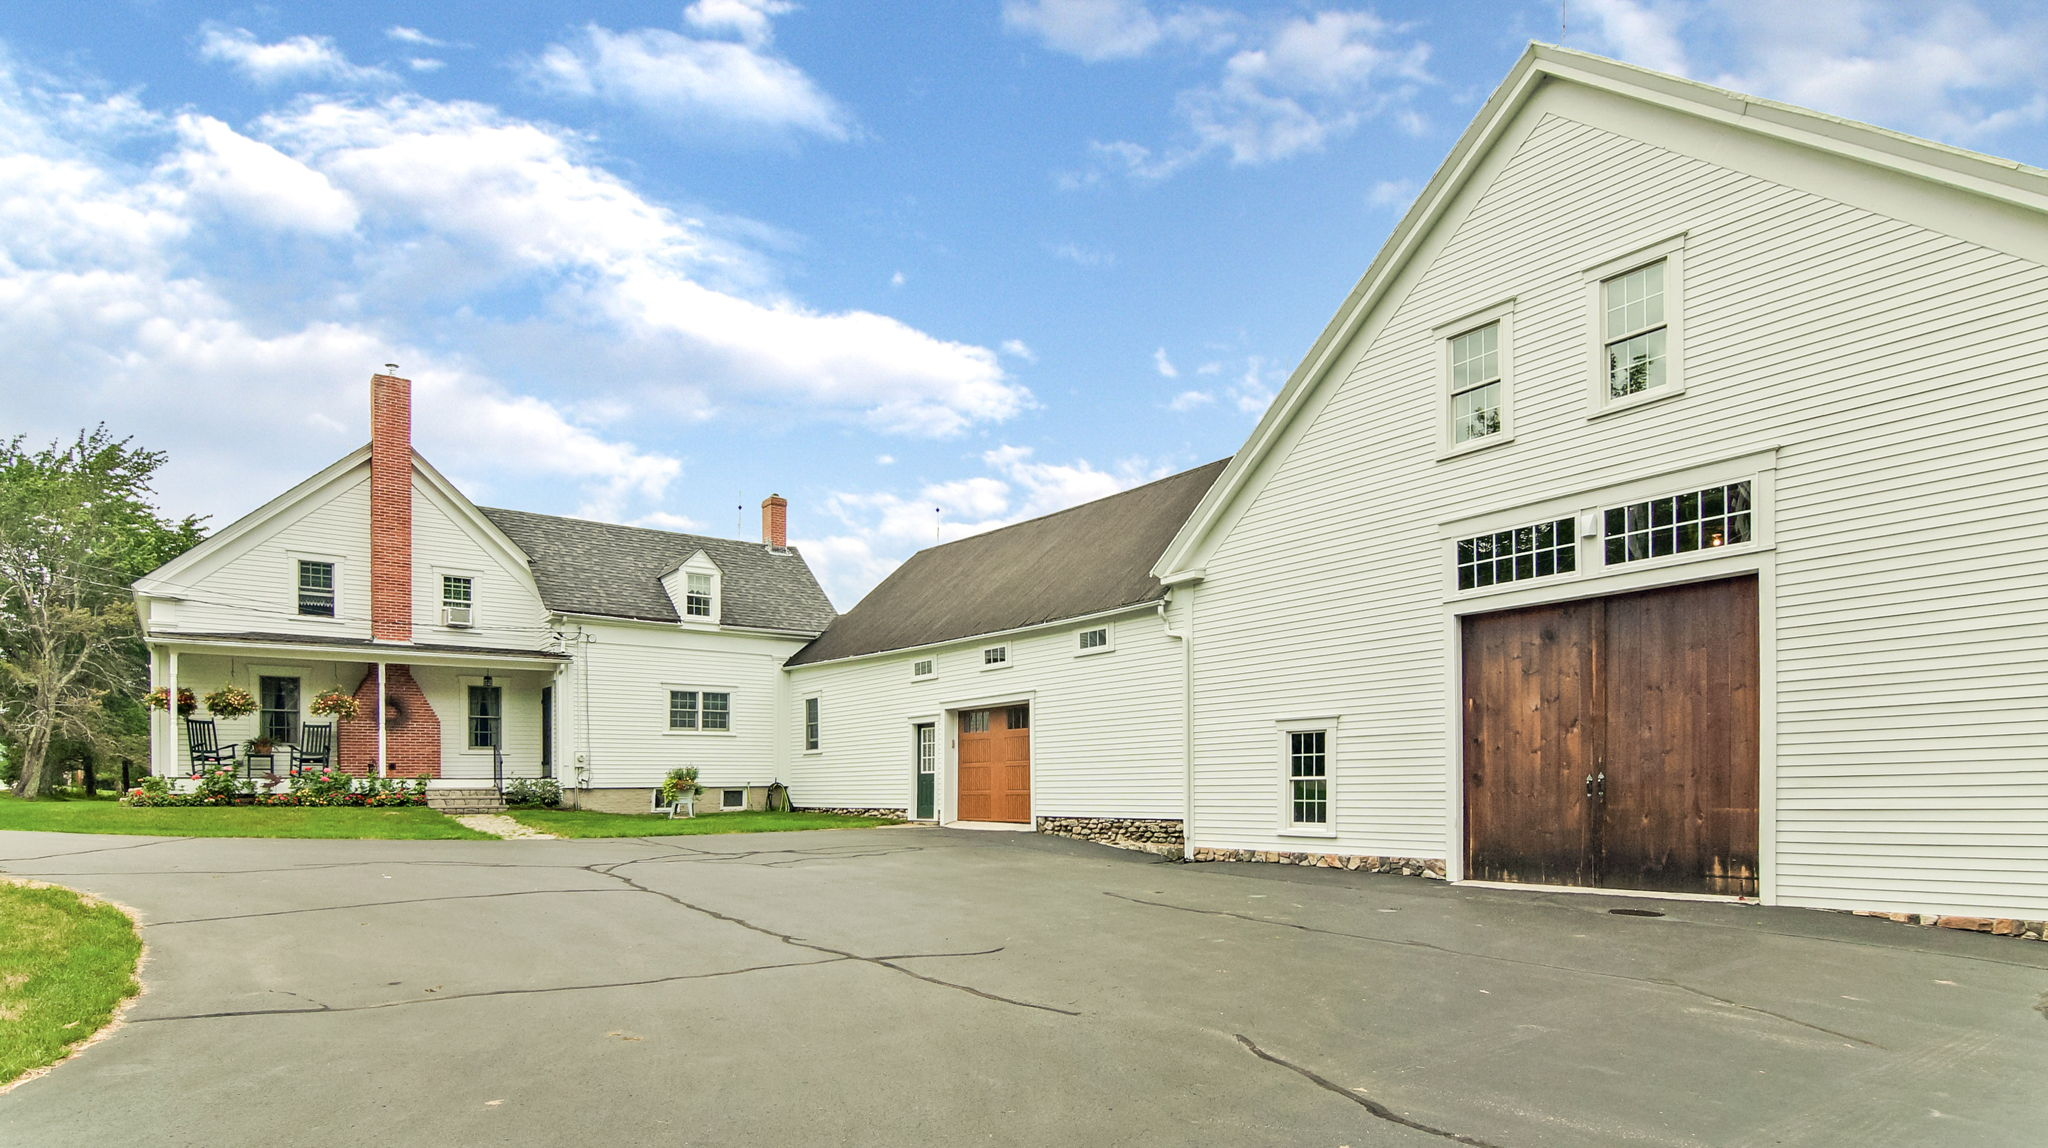 9 Room/ 4 Bedroom Home with Two Large Attached Barns